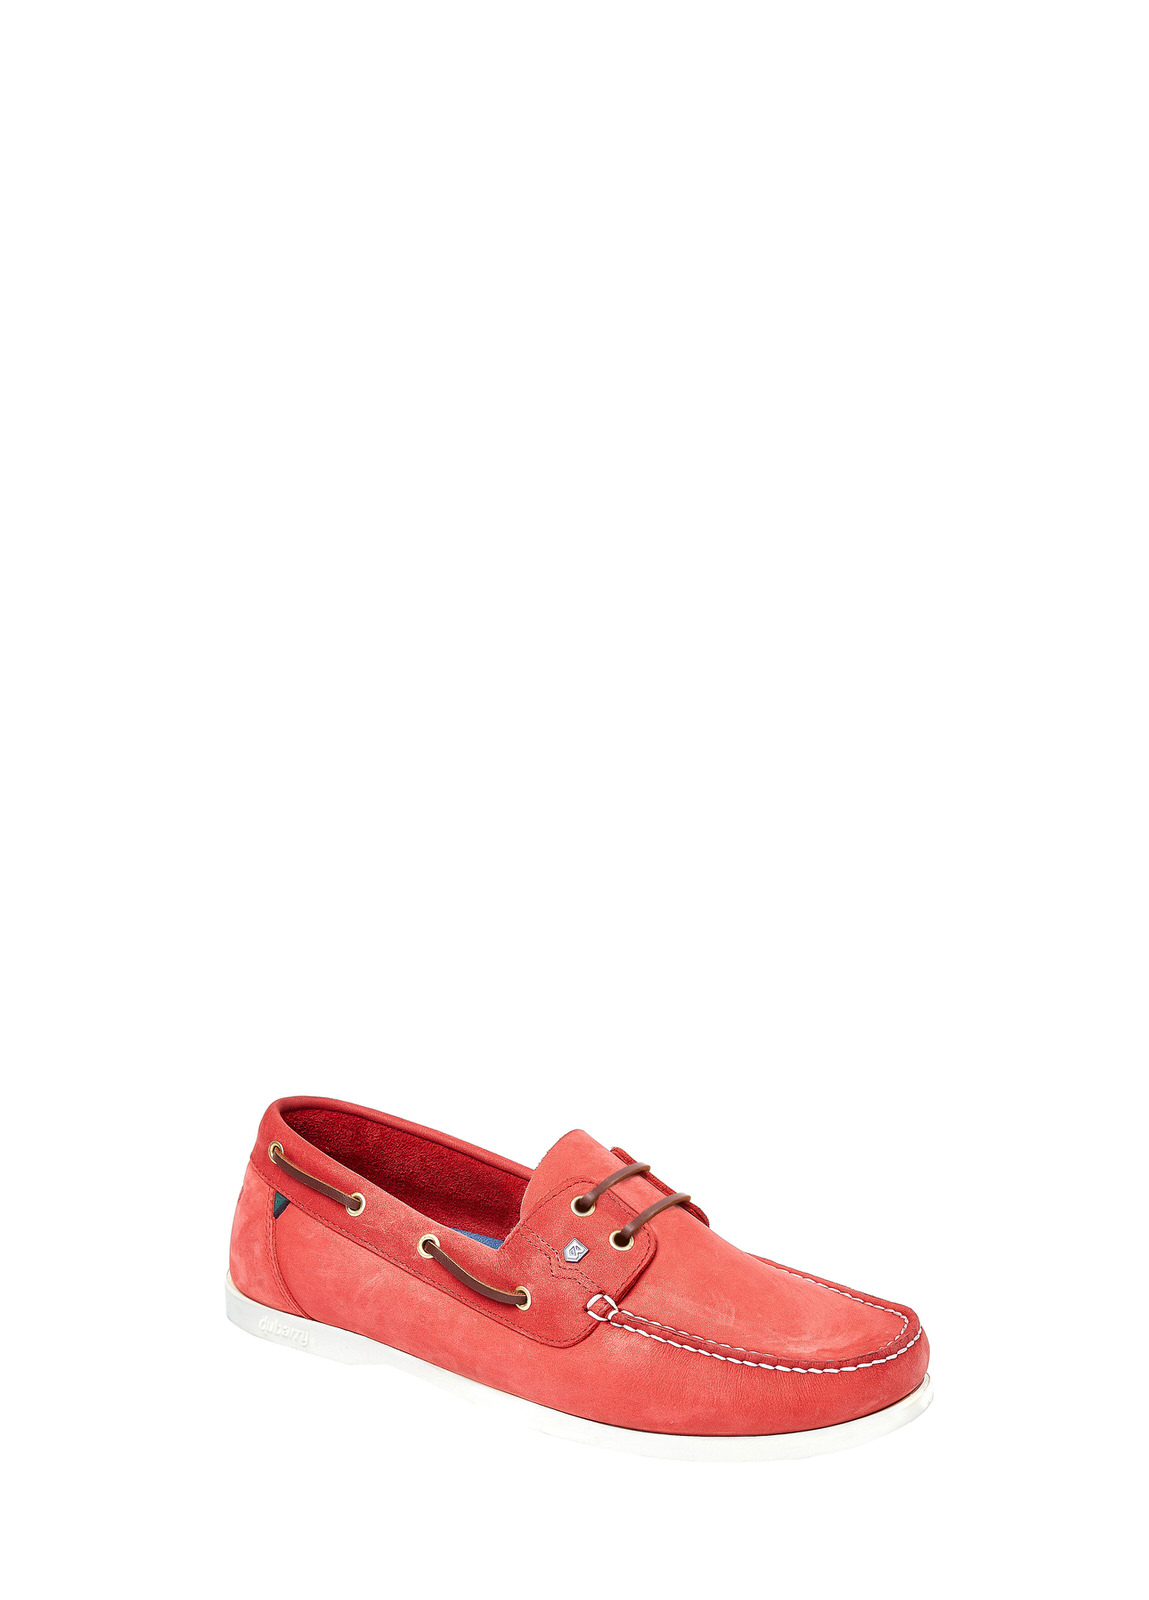 Port Moccasin - Red